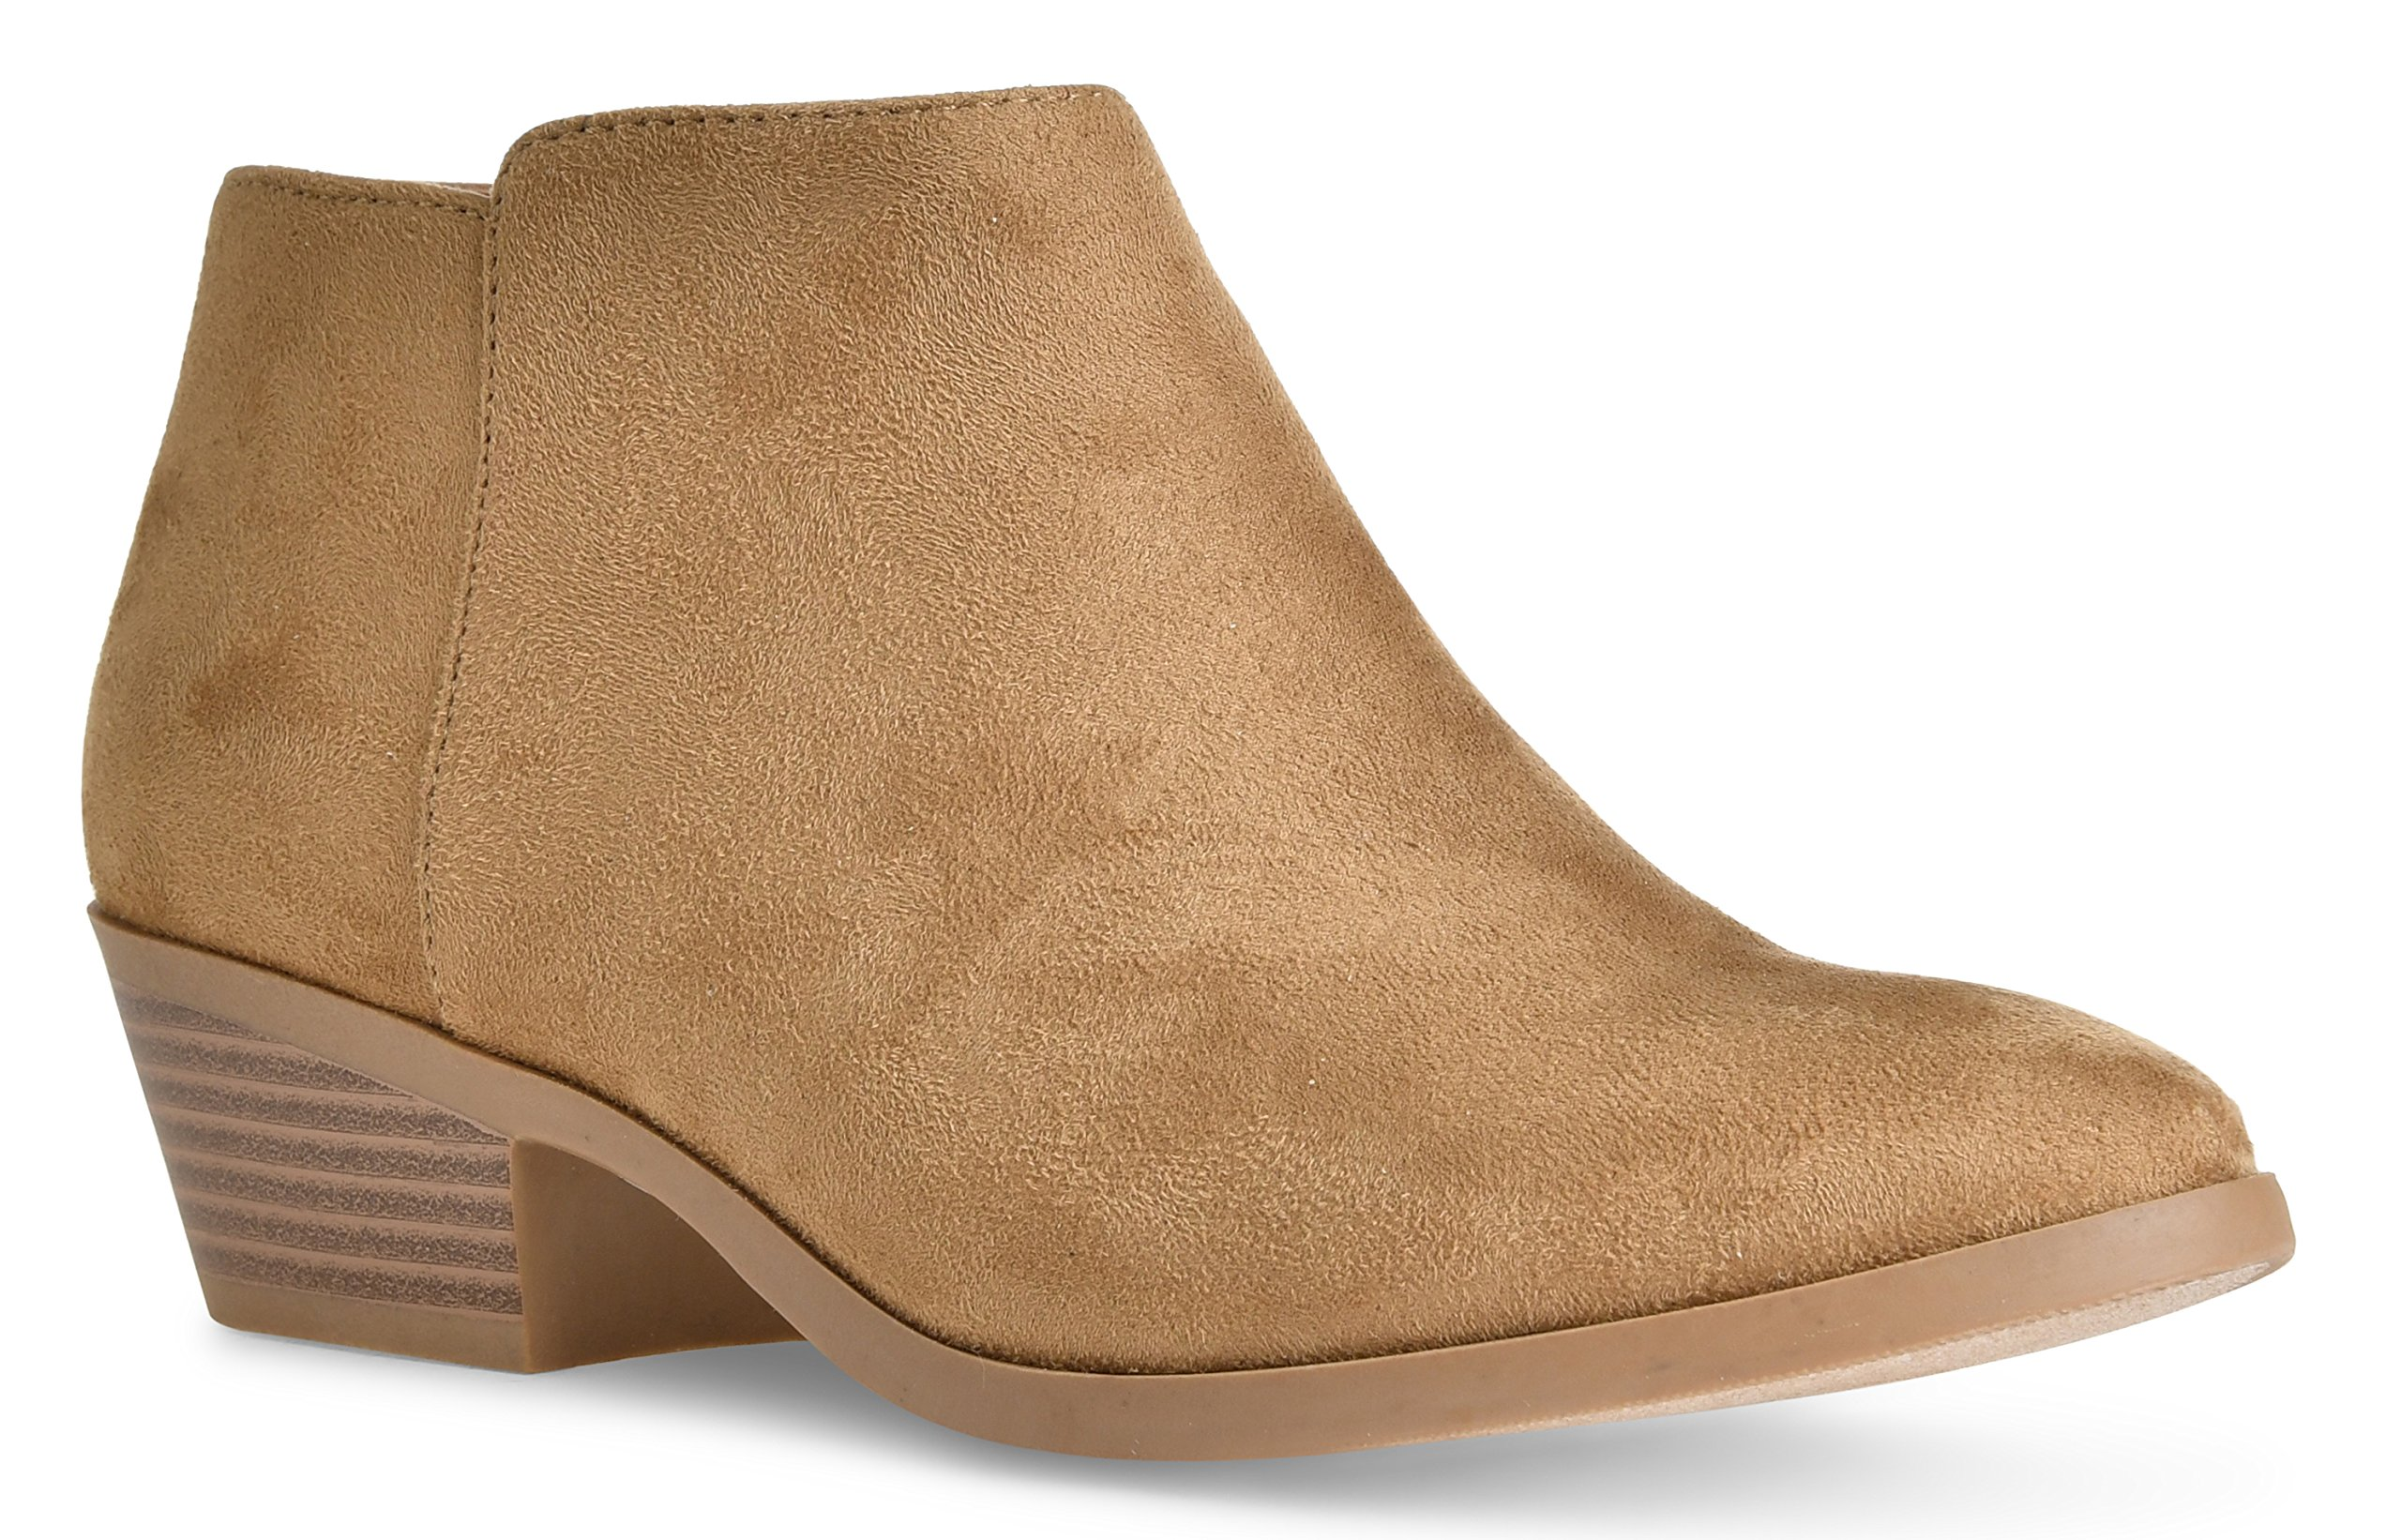 LUSTHAVE Riley Women's Chelsea Round Toe Western Cowgirl Low Heel Closed Toe Casual Ankle Bootie by Natual Suede 8.5